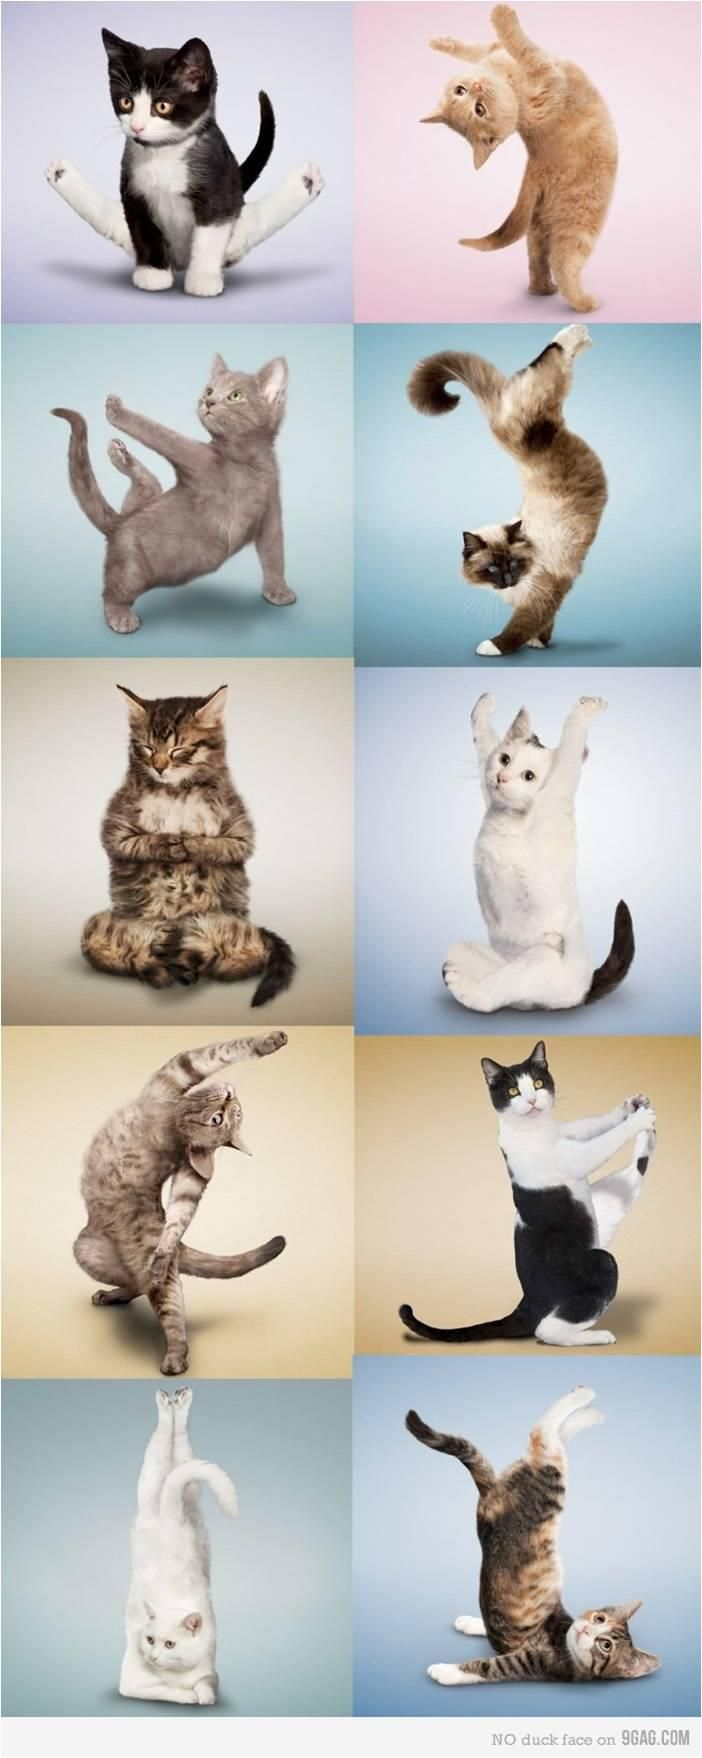 La gymnastique du chat !!